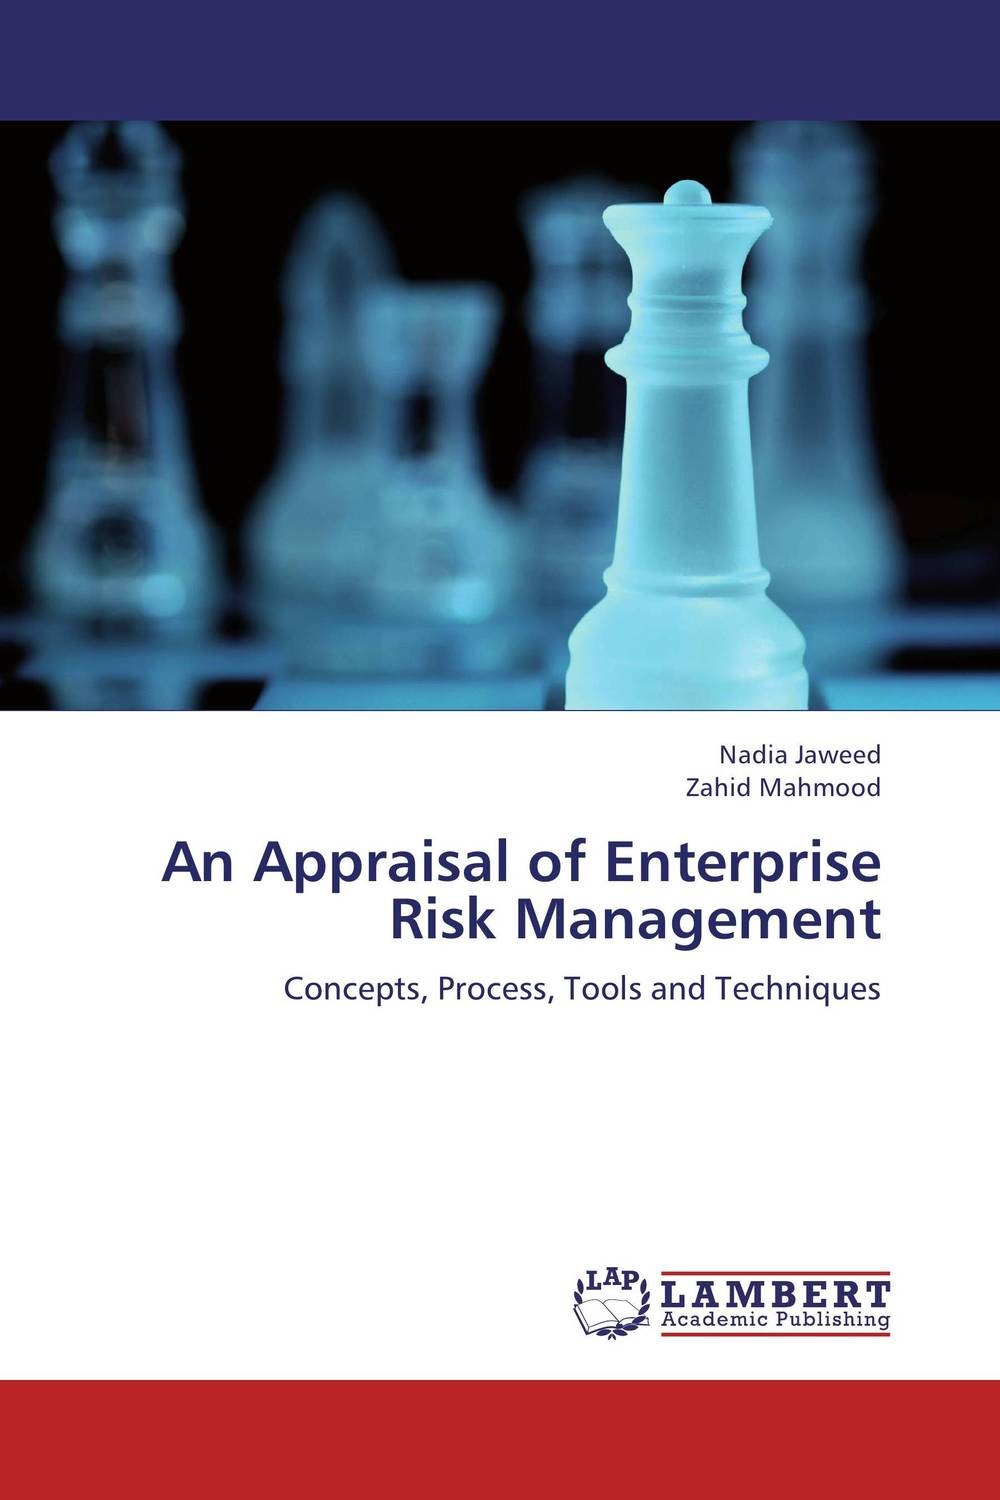 An Appraisal of Enterprise Risk Management sim segal corporate value of enterprise risk management the next step in business management